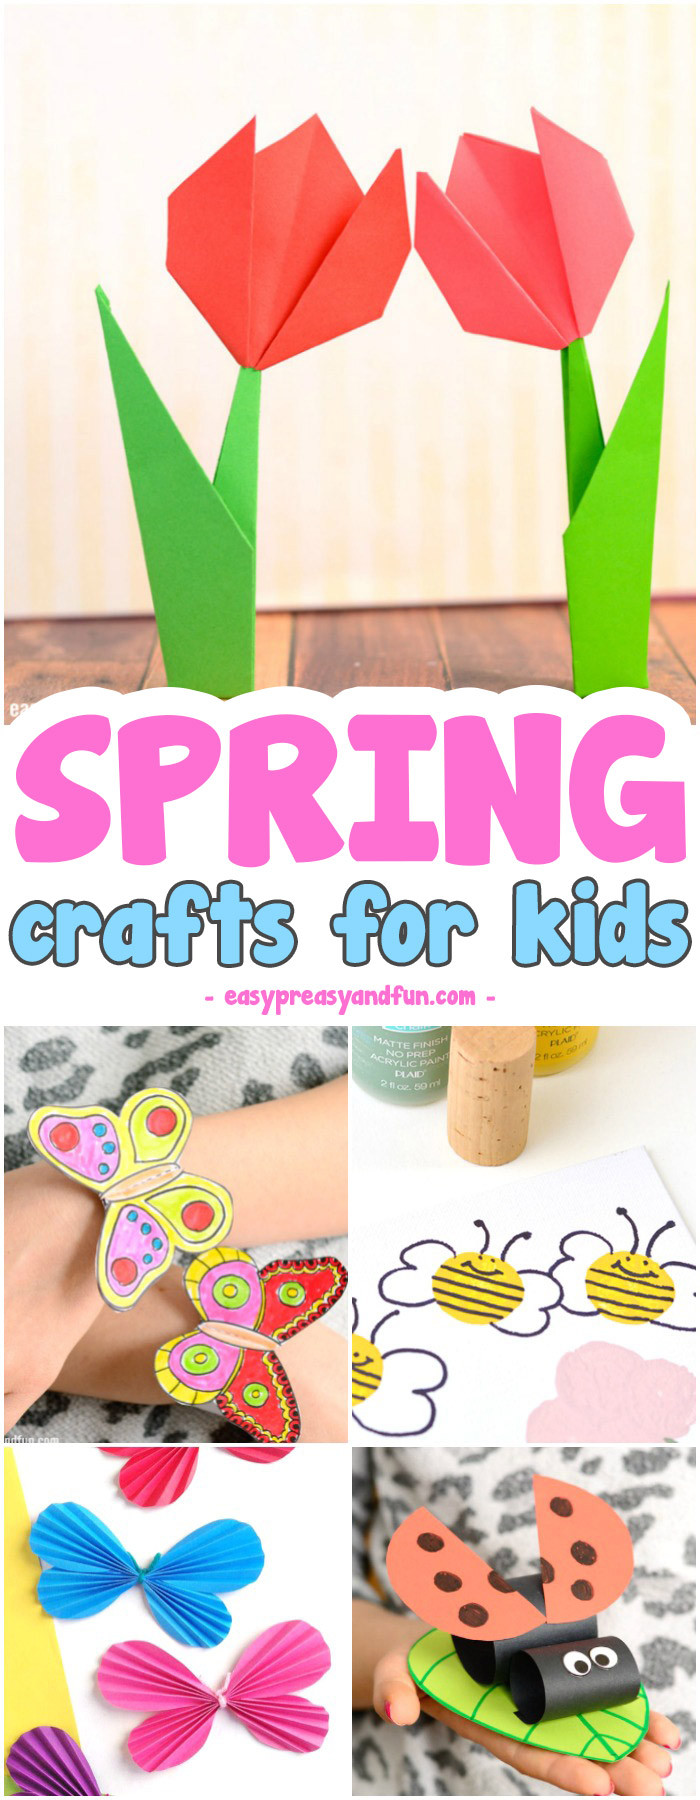 Best ideas about Spring Arts And Crafts For Kids . Save or Pin Spring Crafts for Kids Art and Craft Project Ideas for Now.